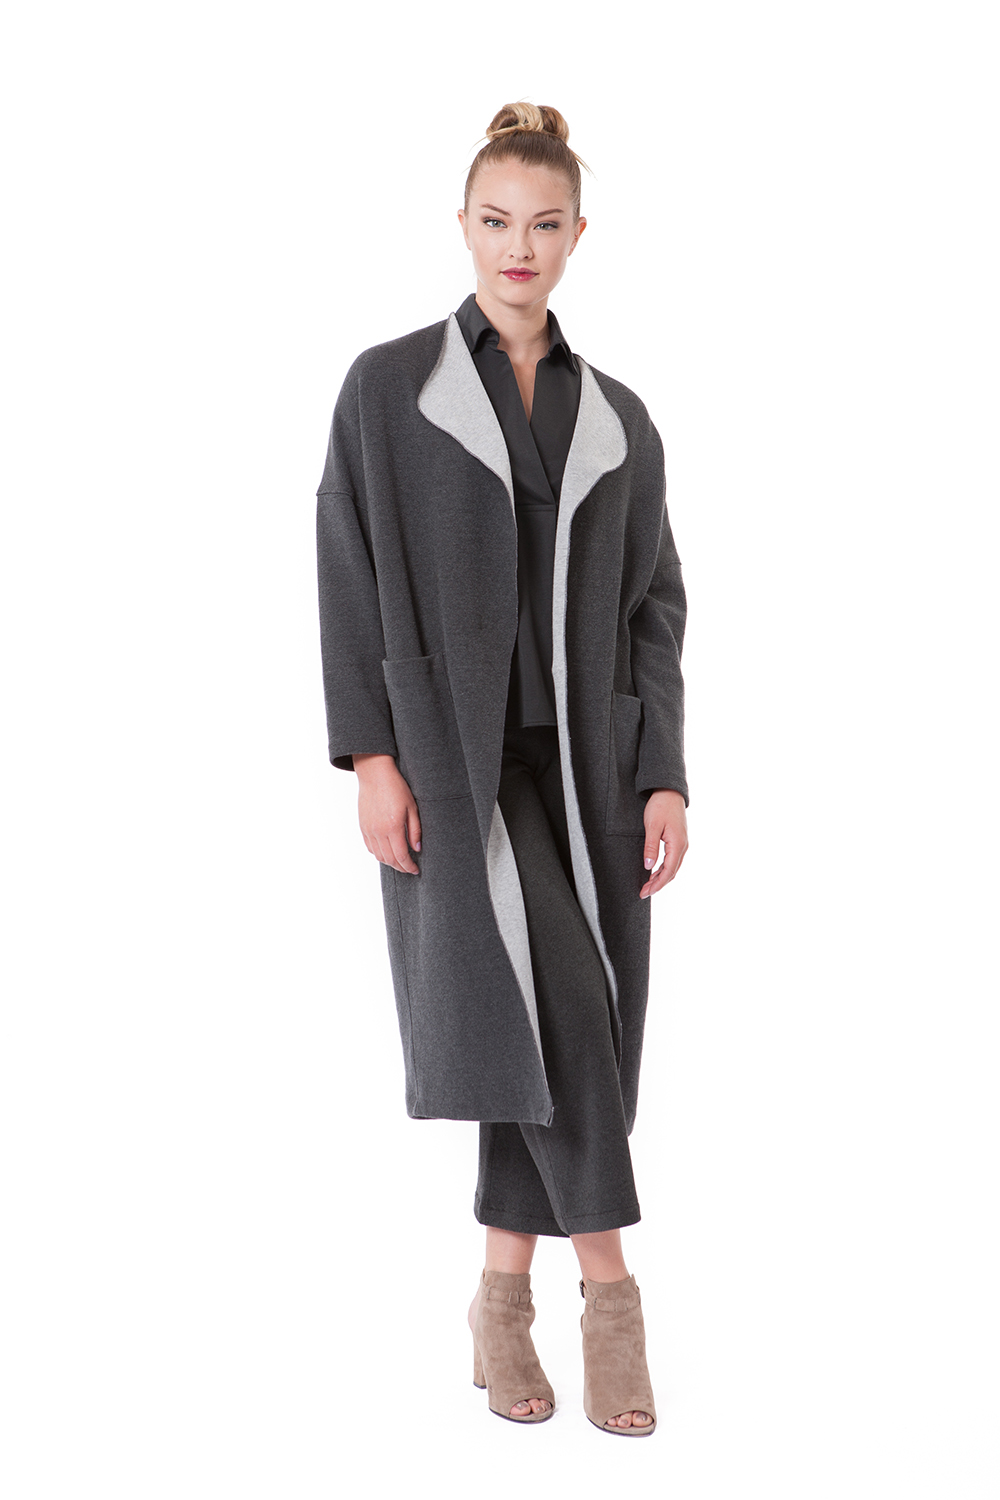 BUKI Cocoon Coat - BUKI Luxe Sportswear Collection